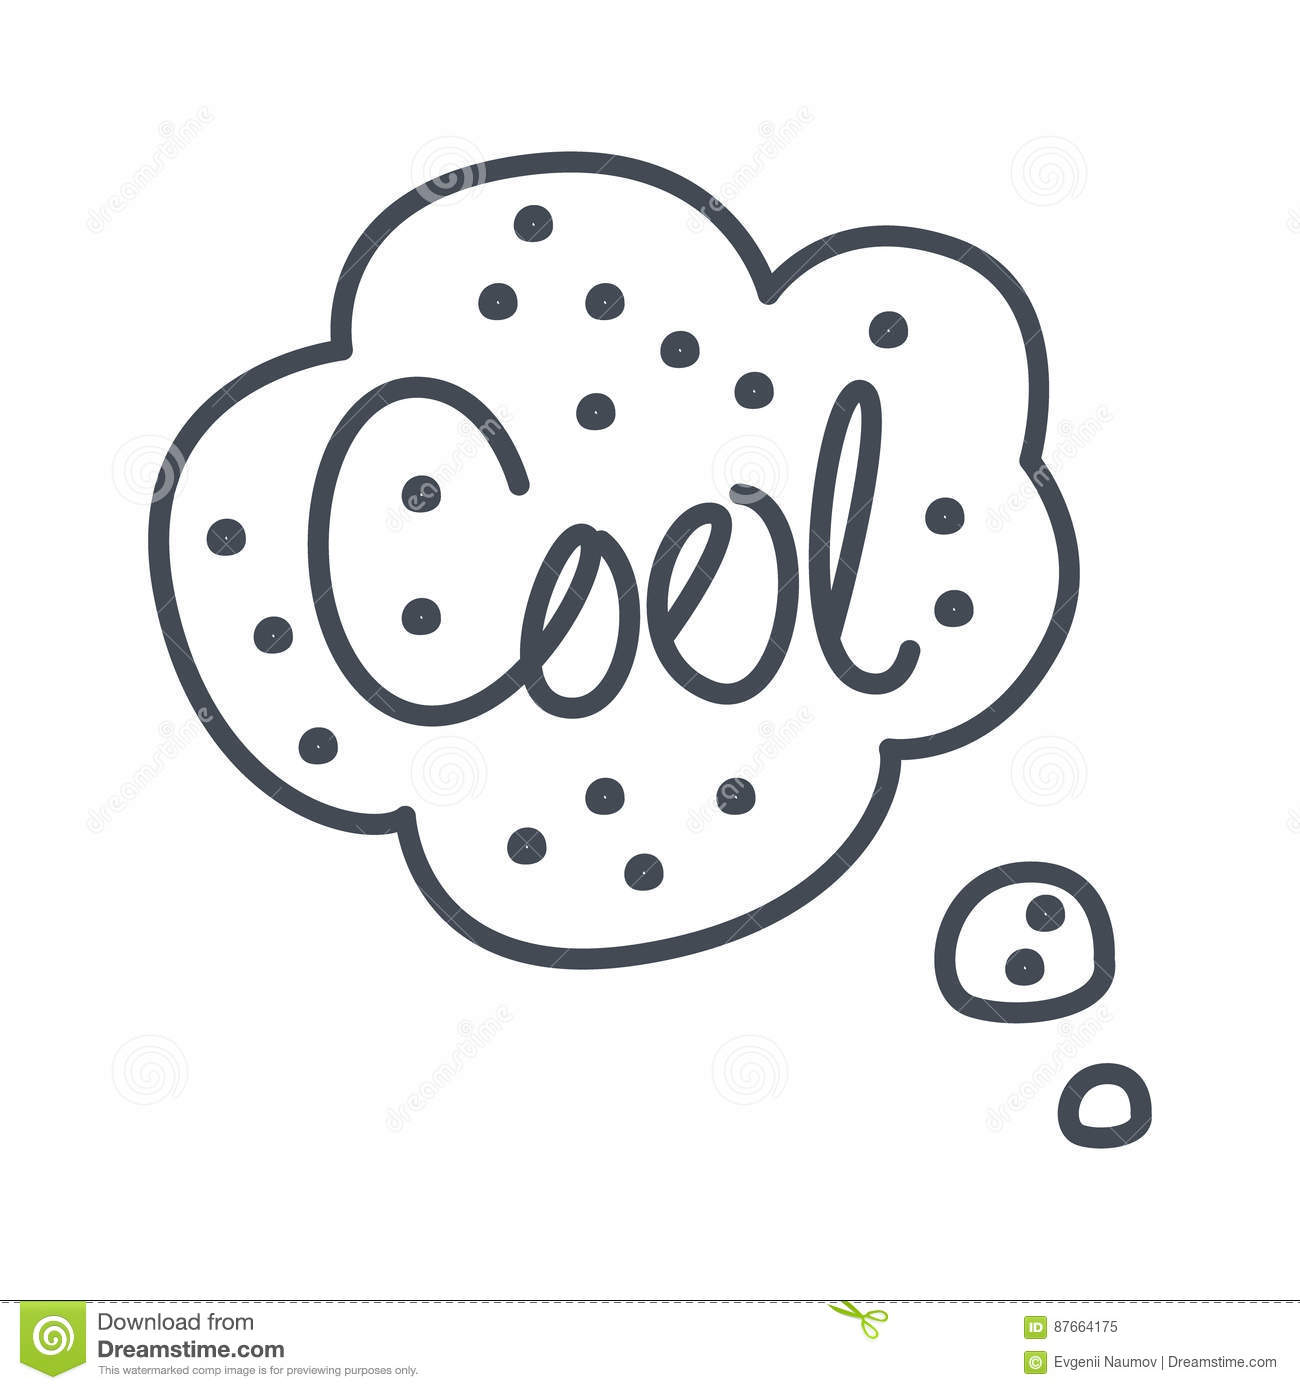 word cool hand drawn comic speech bubble template isolated black